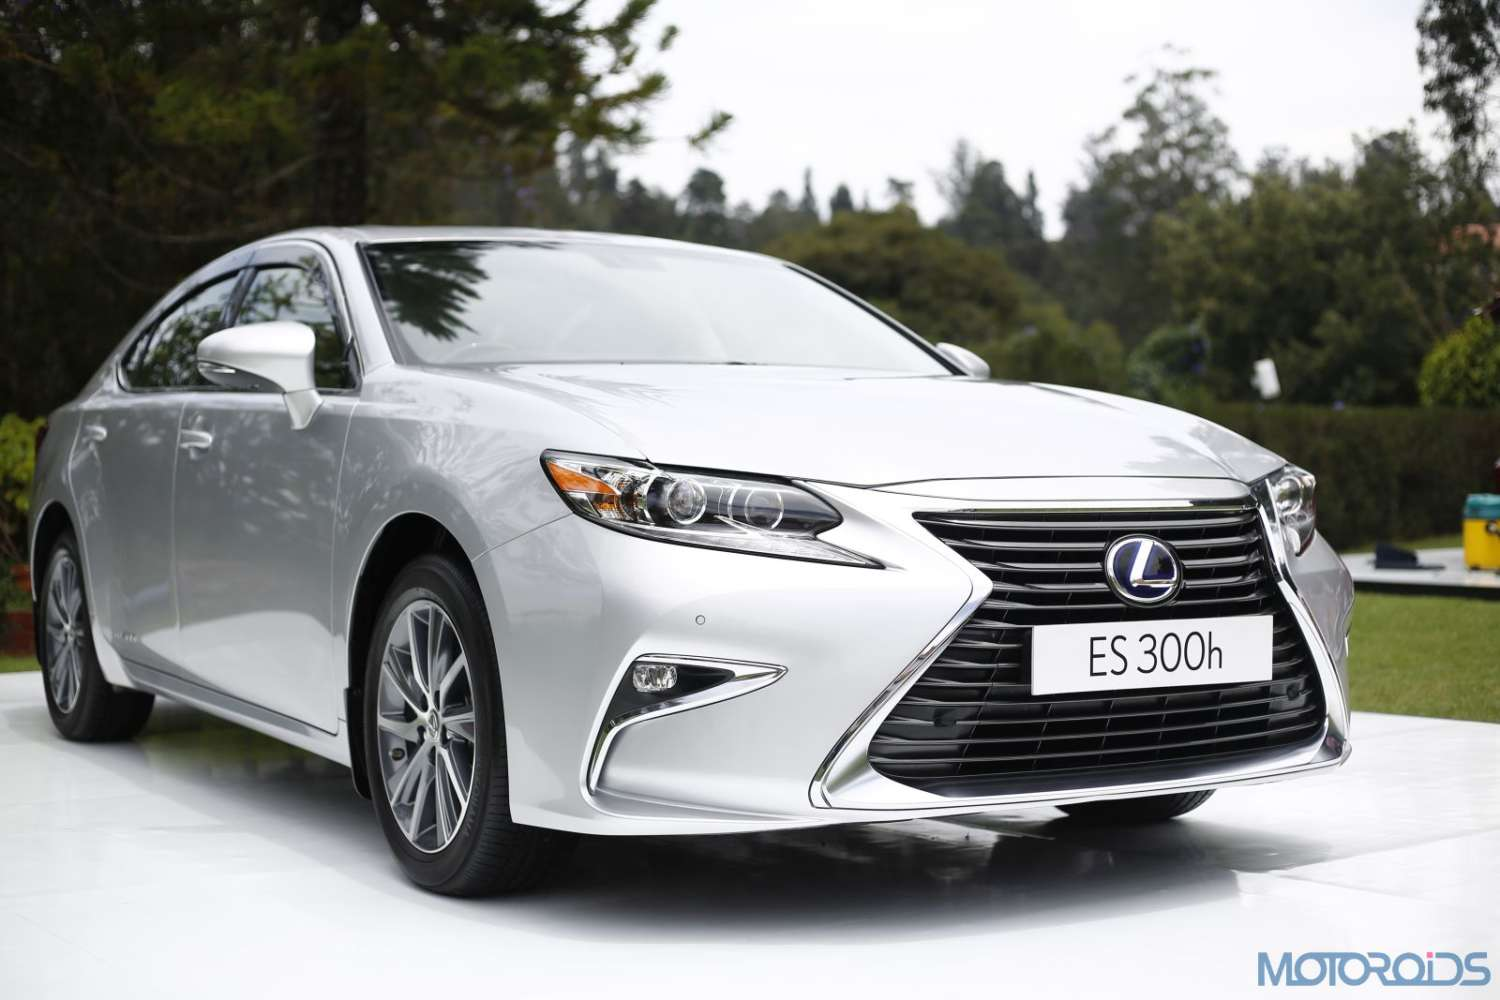 lexus es 300h reviews wallpaper collections 2004 volvo xc90 owners manual free download 2004 volvo xc90 owners manual free download